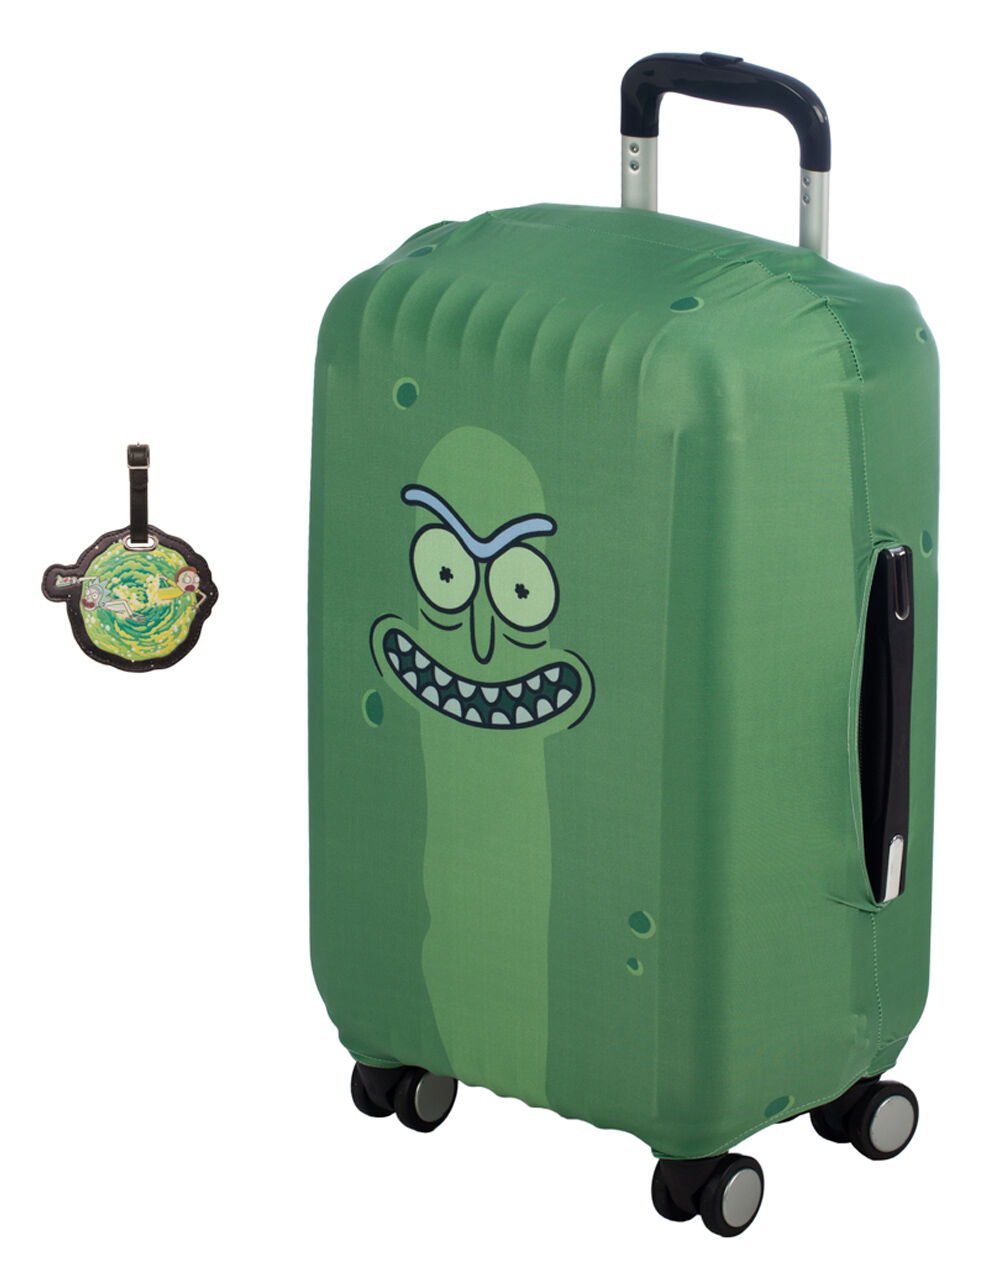 Image of RICK AND MORTY LUGGAGE TAG & SLEEVE TRAVEL PACK